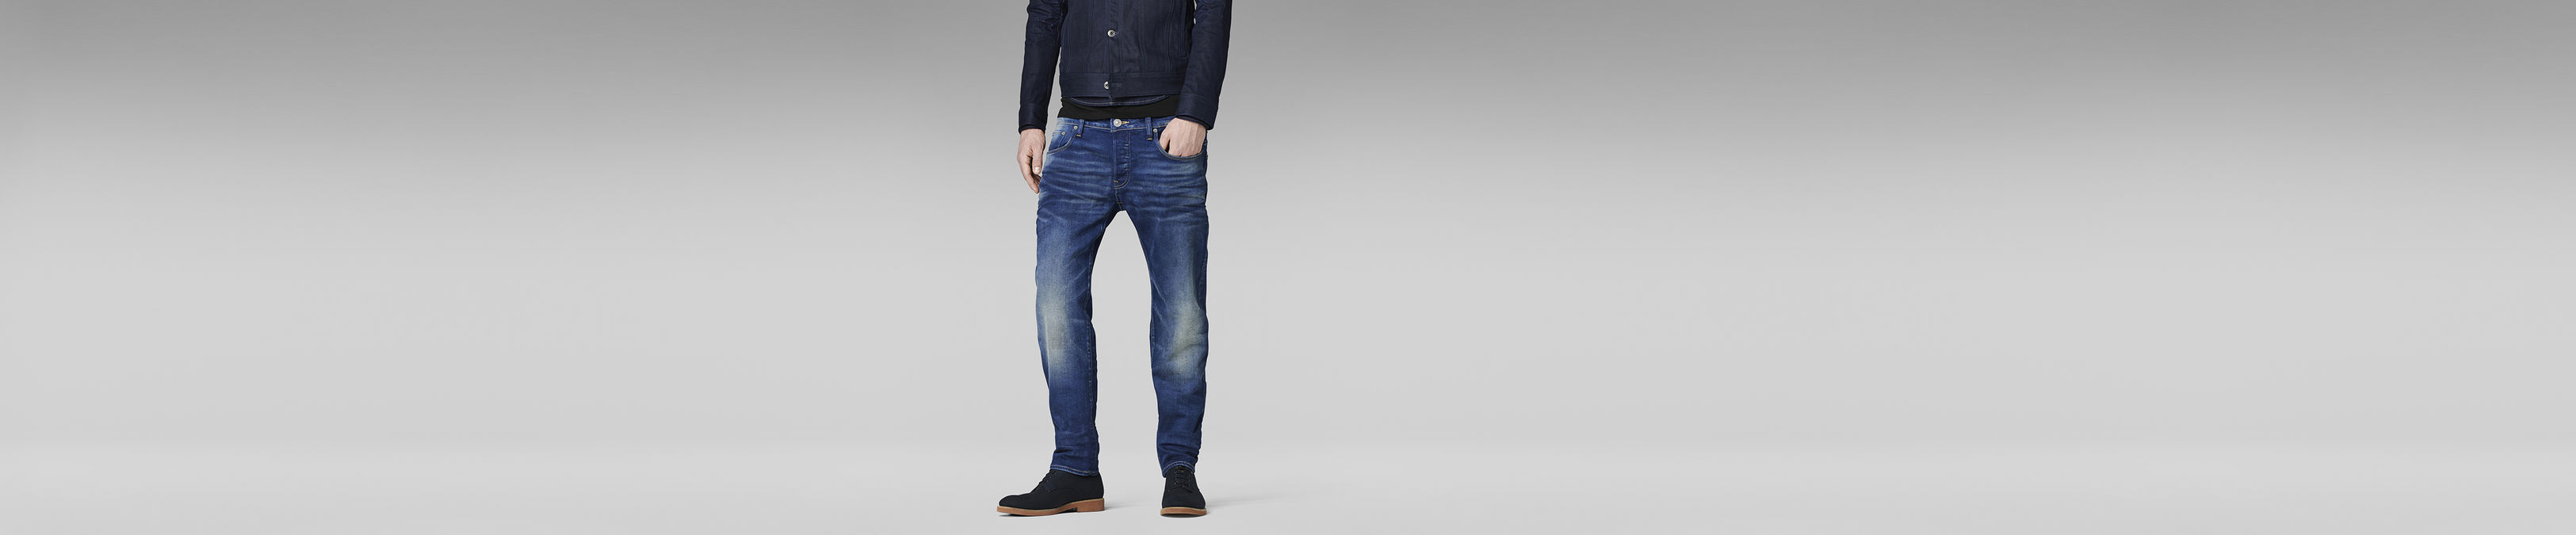 3301 Low Tapered Jeans | Medium Aged | Hommes | G Star RAW®